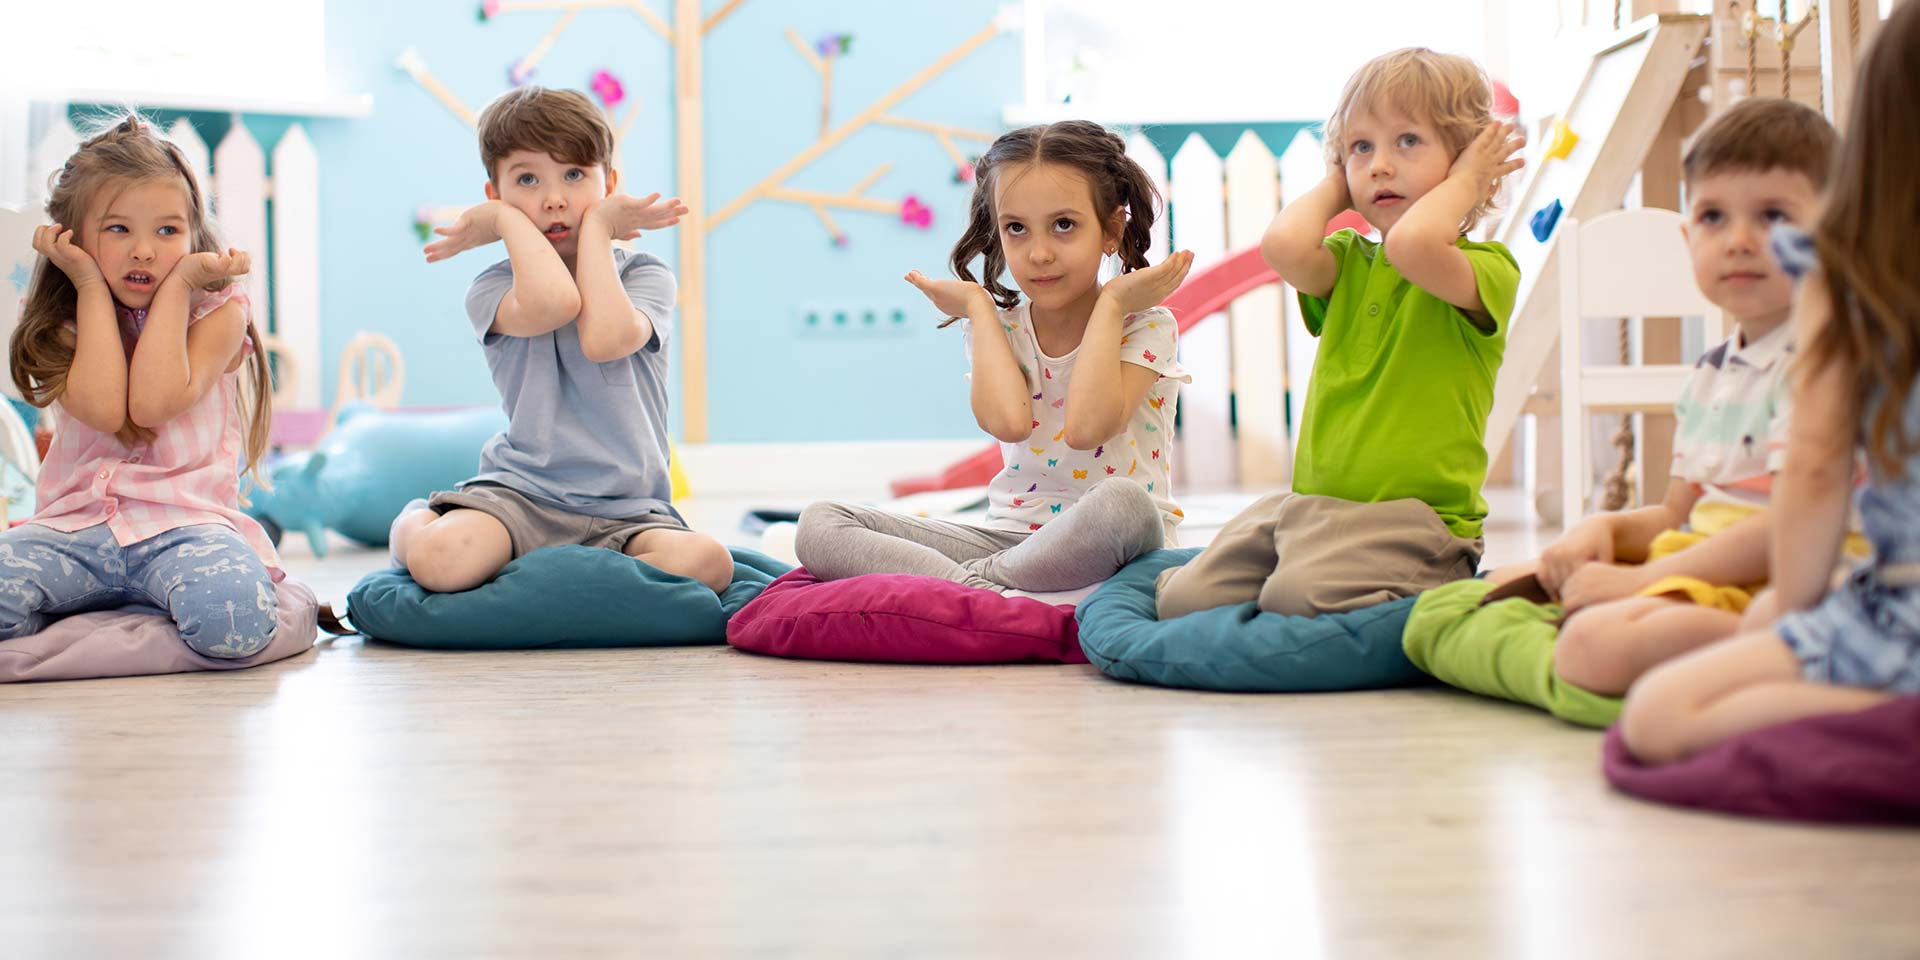 Is Your Child Ready to Start Preschool? How to Decide